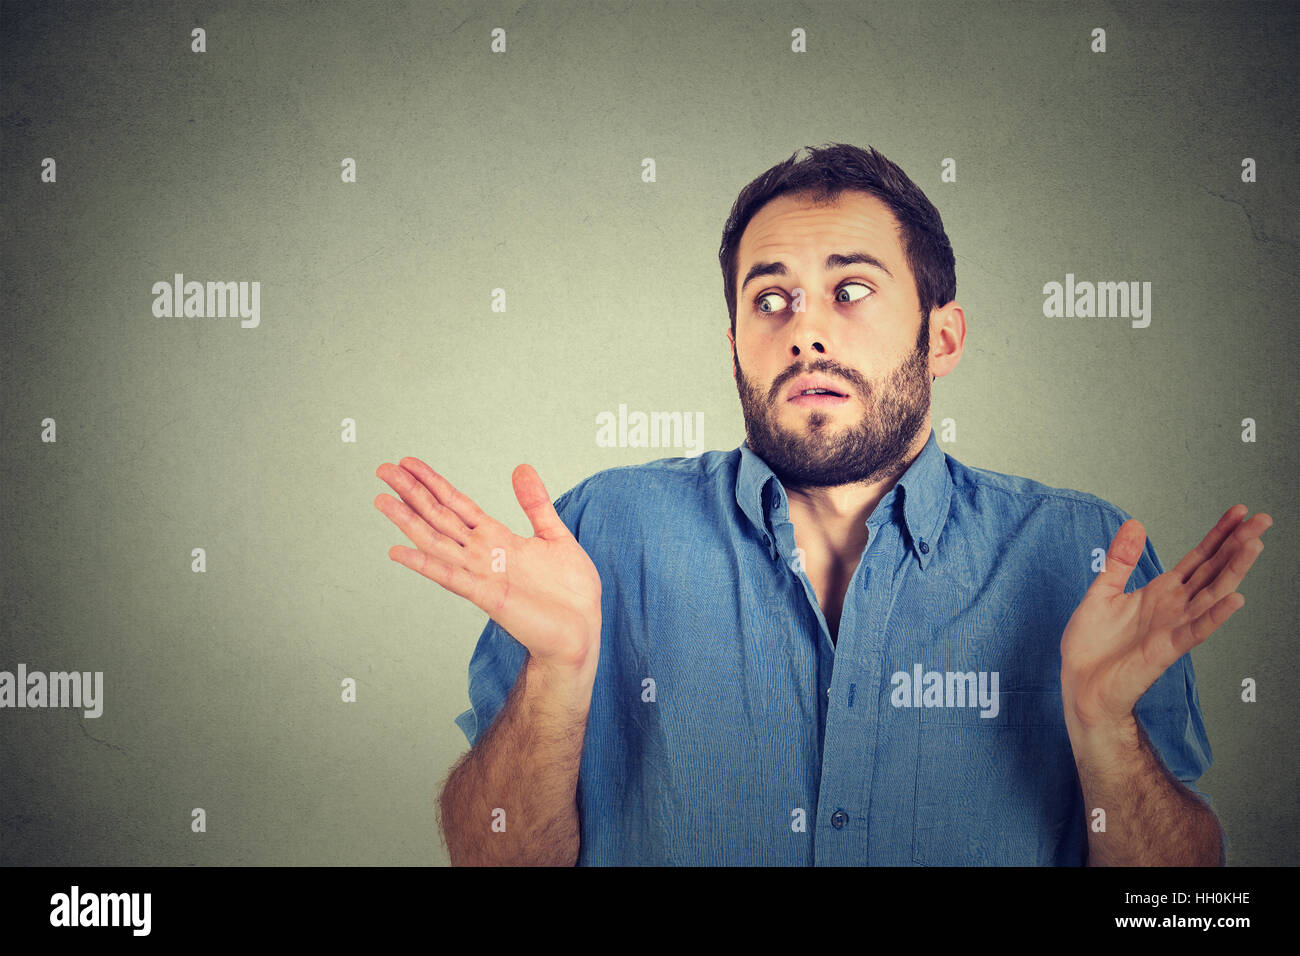 Closeup portrait young man shrugging shoulders who cares so what I don't know gesture isolated on gray background. - Stock Image